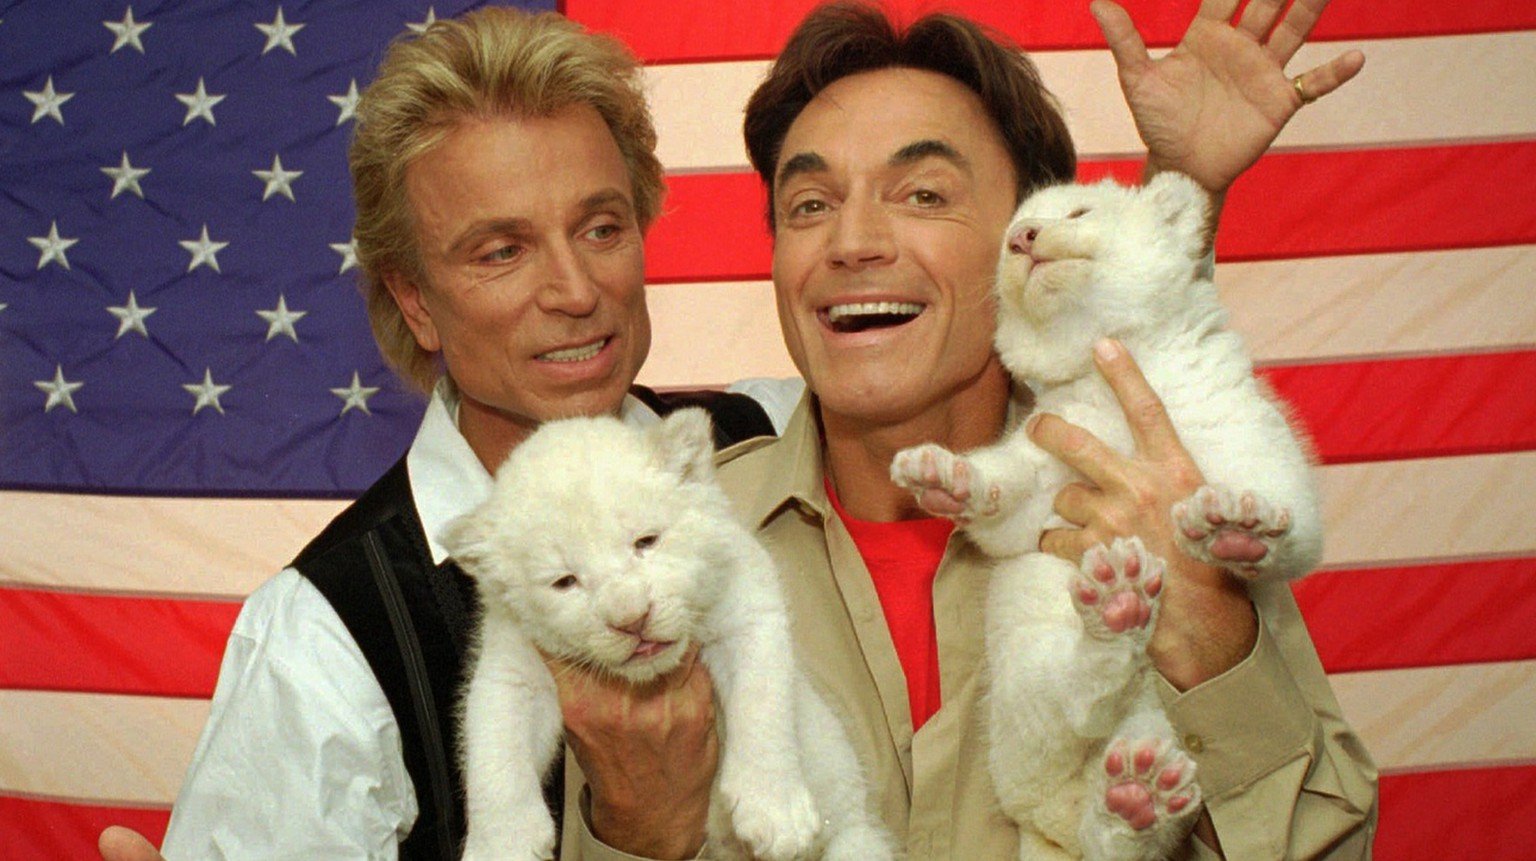 Two rare, 18-day-old white lion cubs squirm their way through a photo session with their new American hosts, illusionists Siegfried, left, and Roy, Thursday, May 2, 1996, in Las Vegas. A tiger attacked magician Roy Horn of the duo ''Siegfried and Roy'' during a Friday night performance at The Mirage hotel-casino, authorities said. Roy was attacked at the throat, said Clark County Fire spokesman Bob Leinbach. He was taken to University Medical Center; Leinbach did not know his condition. (KEYSTONE/AP Photo/Lennox McLendon)